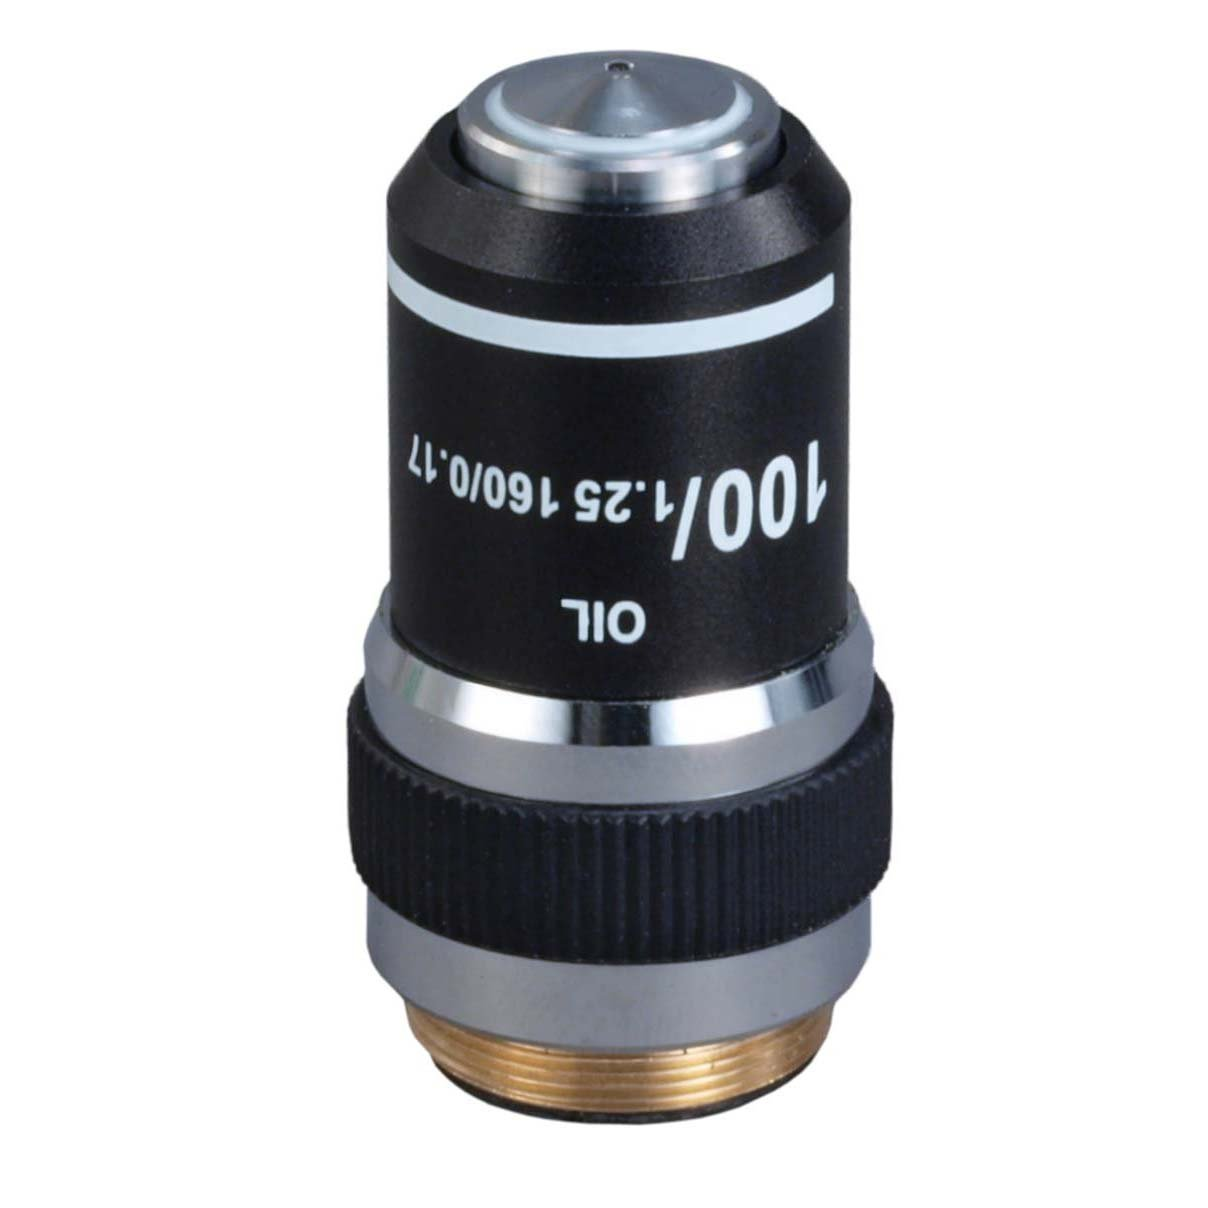 OMAX 100X (Oil, Spring) Achromatic Compound Microscope Objective Lens by OMAX